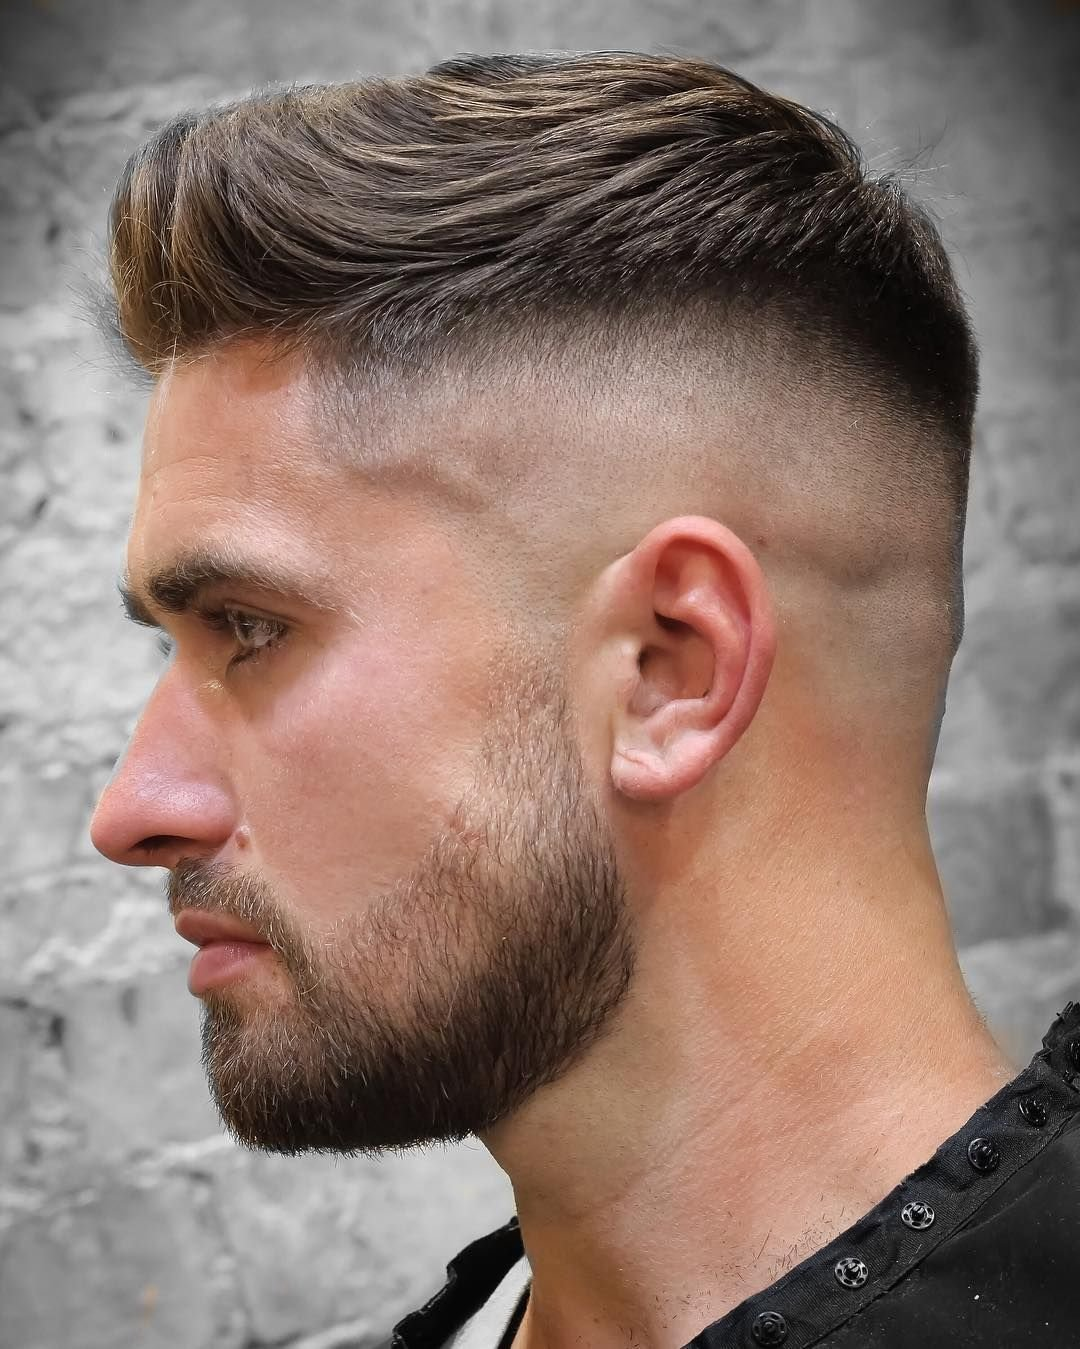 Free Mens Hairstyles 2019 Hair Styles In 2019 Quiff Haircut Wallpaper